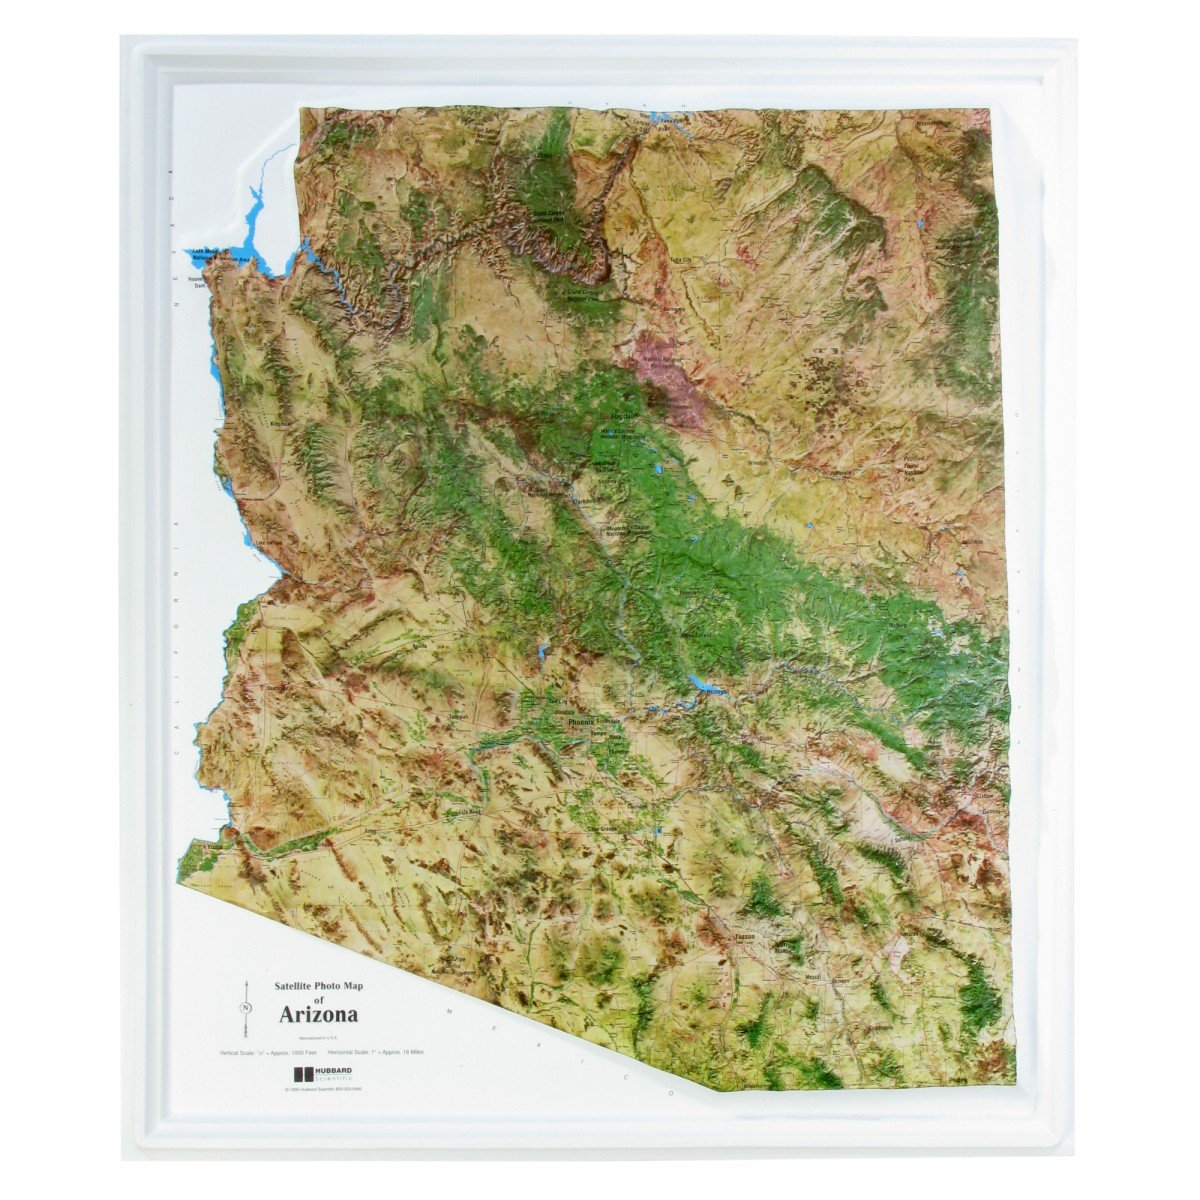 Satellite Maps Arizona Amazon.com: American Education Raised Relief Map: Arizona